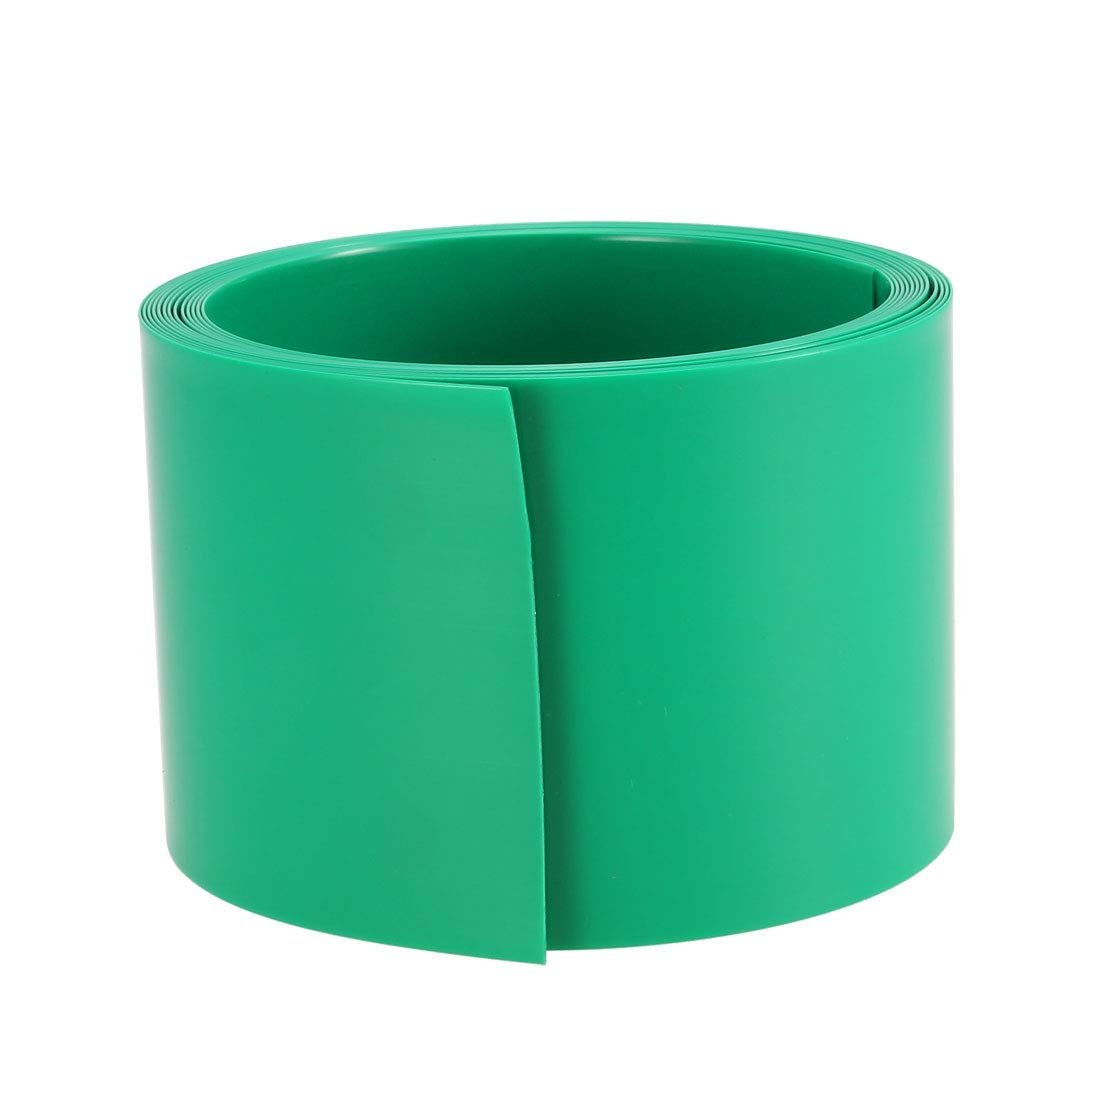 40mm Wide Wide PVC Retractable Tube for DIY 2 Meters Green